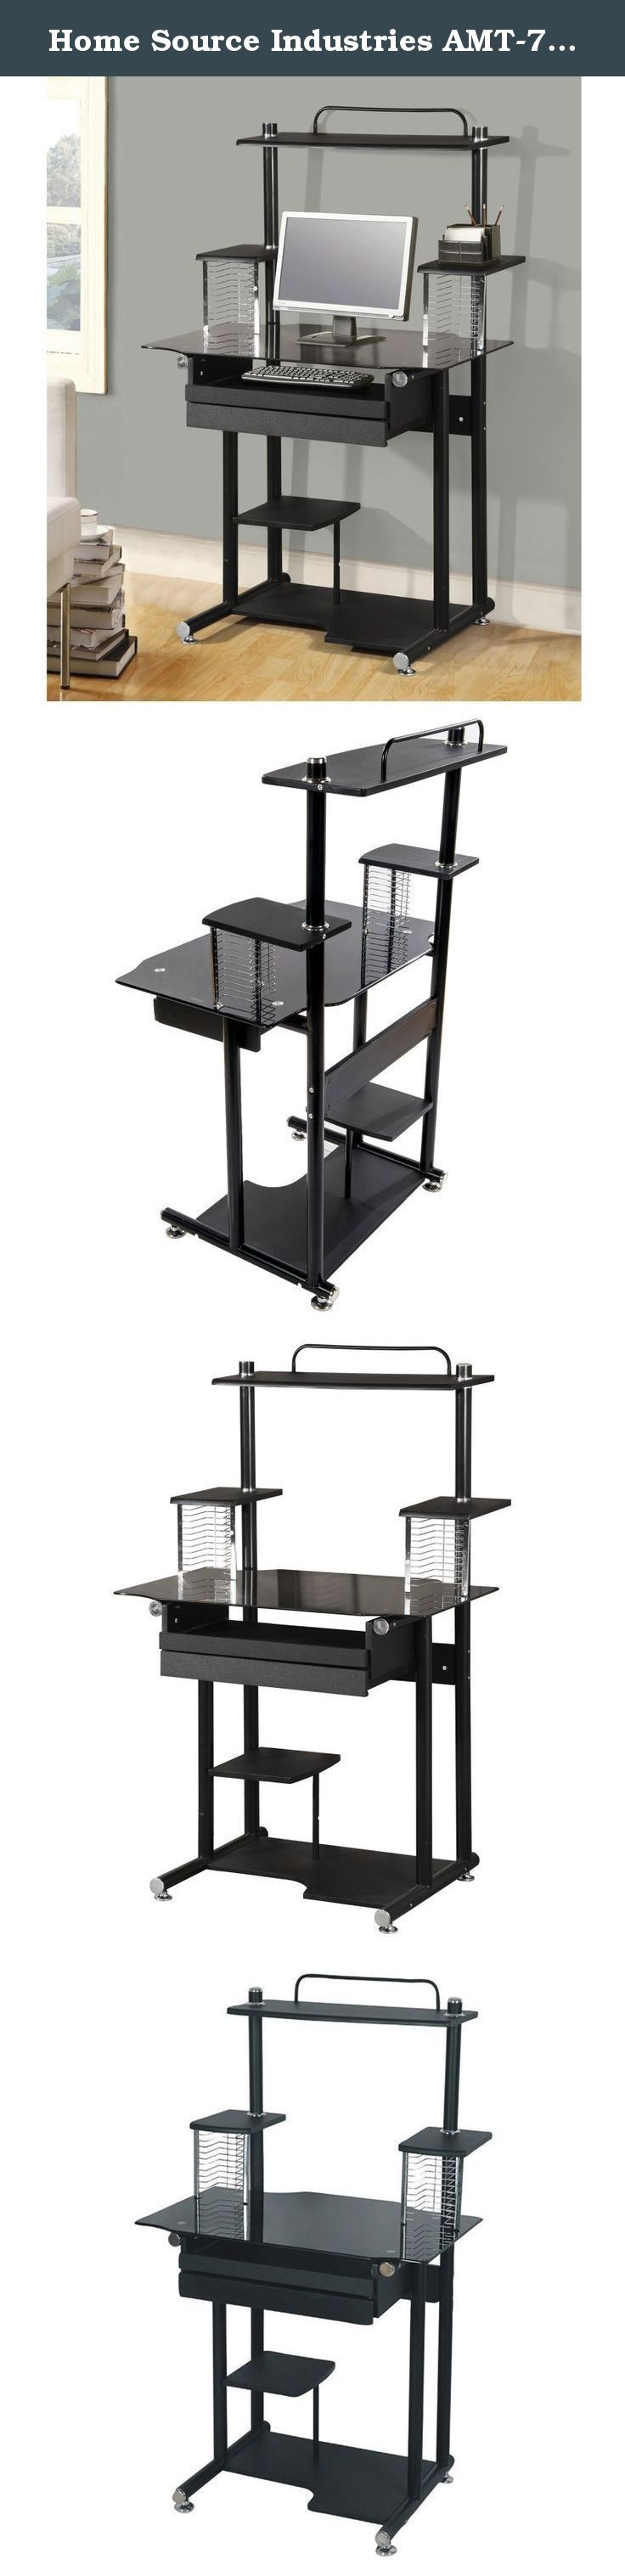 Home Source Industries AMT-779 Computer Cart on Casters Black. This computer cart in black combines modern style with space-saving functionality. This desk is a great fit in any room in your home or office. with plenty of options to help you keep your computer accessories and various documents organized, it is sure to meet your needs while taking up a minimum amount of space. This-piece is easy to assemble and appreciate.